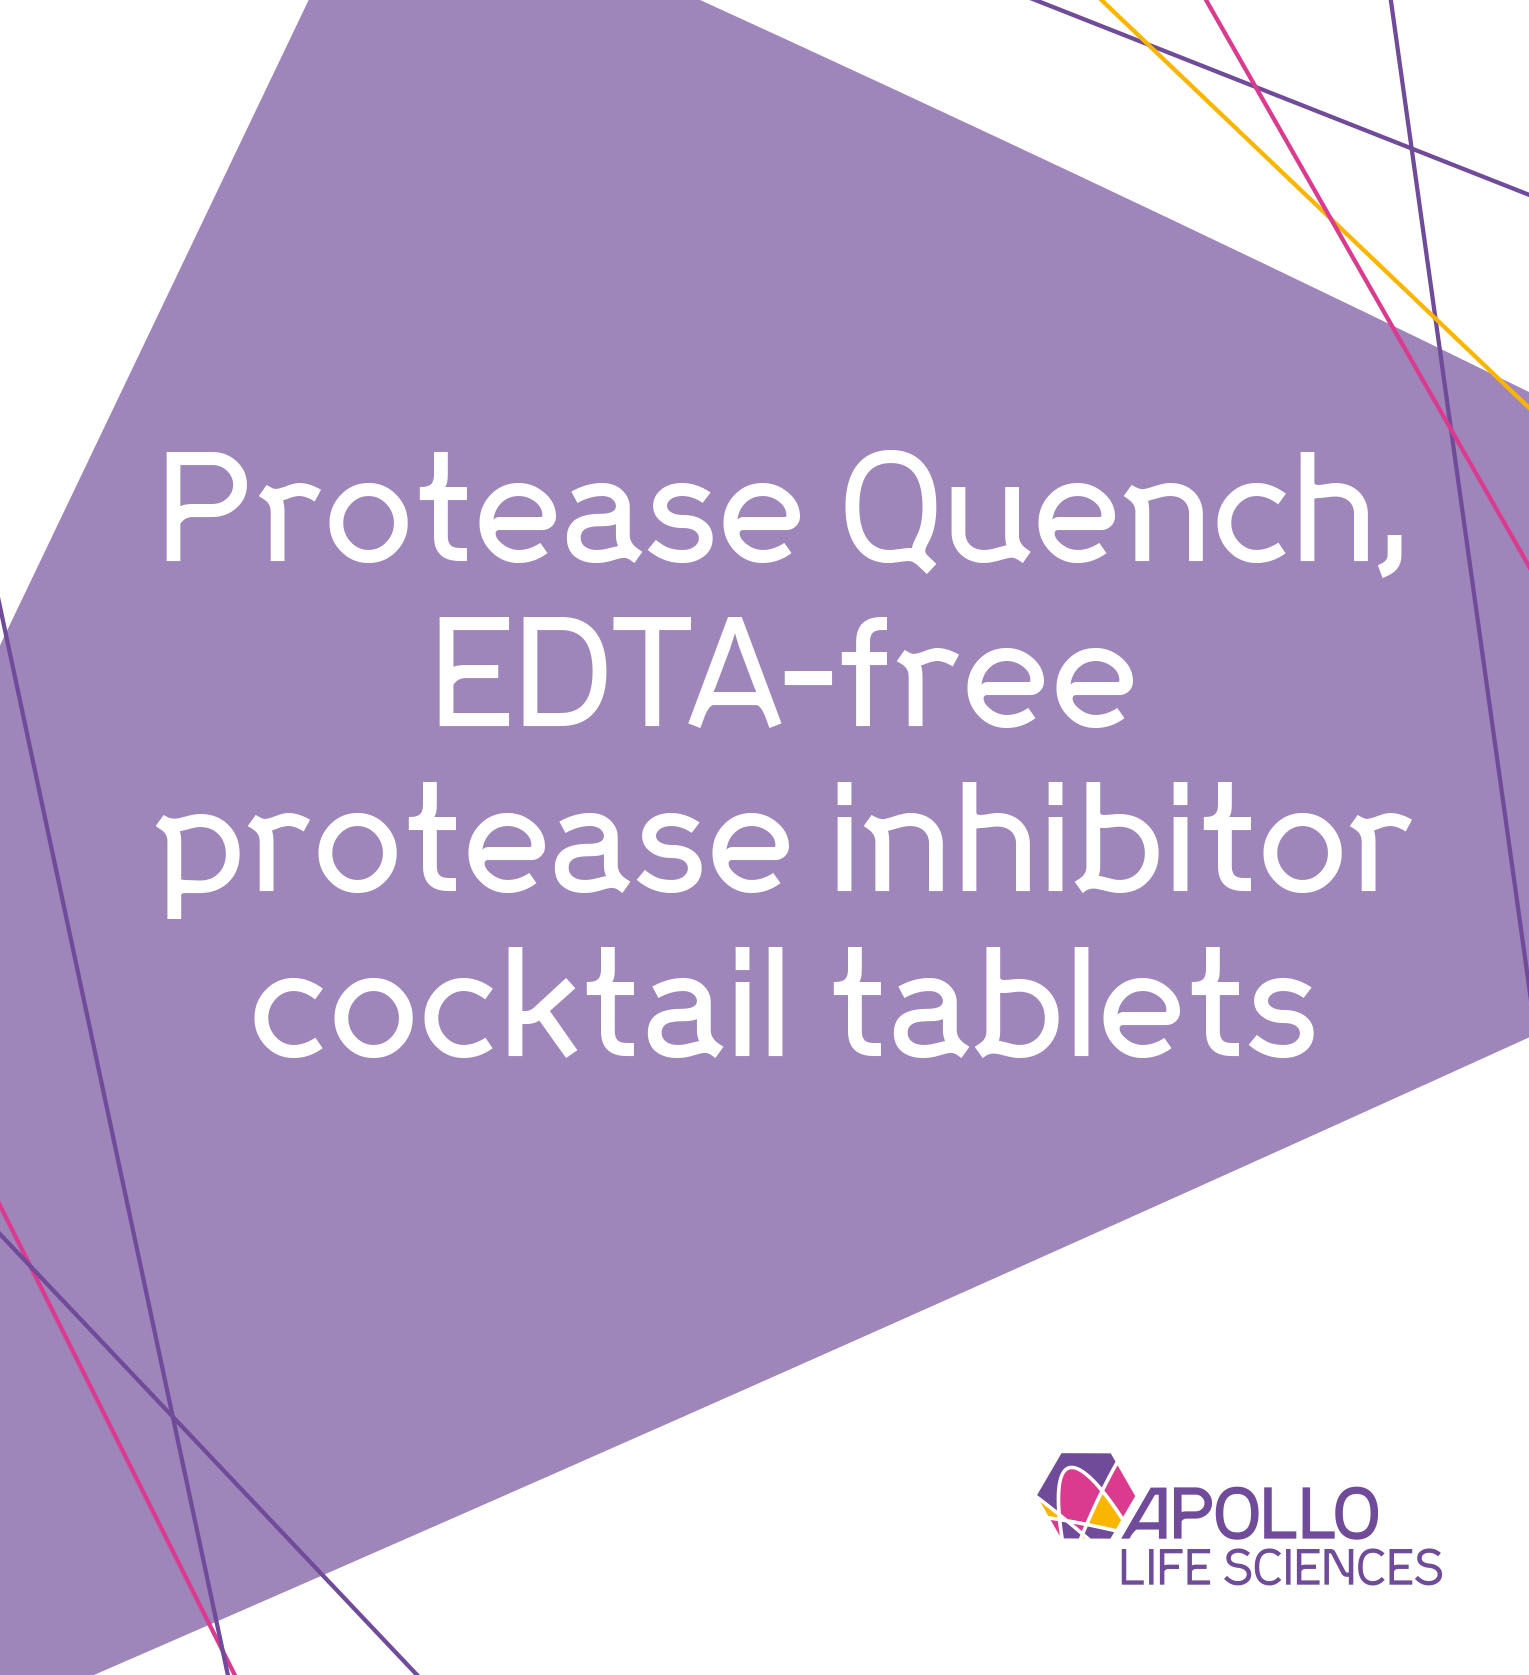 Protease Quench, EDTA-free protease inhibitor cocktail tablets thumbnail image